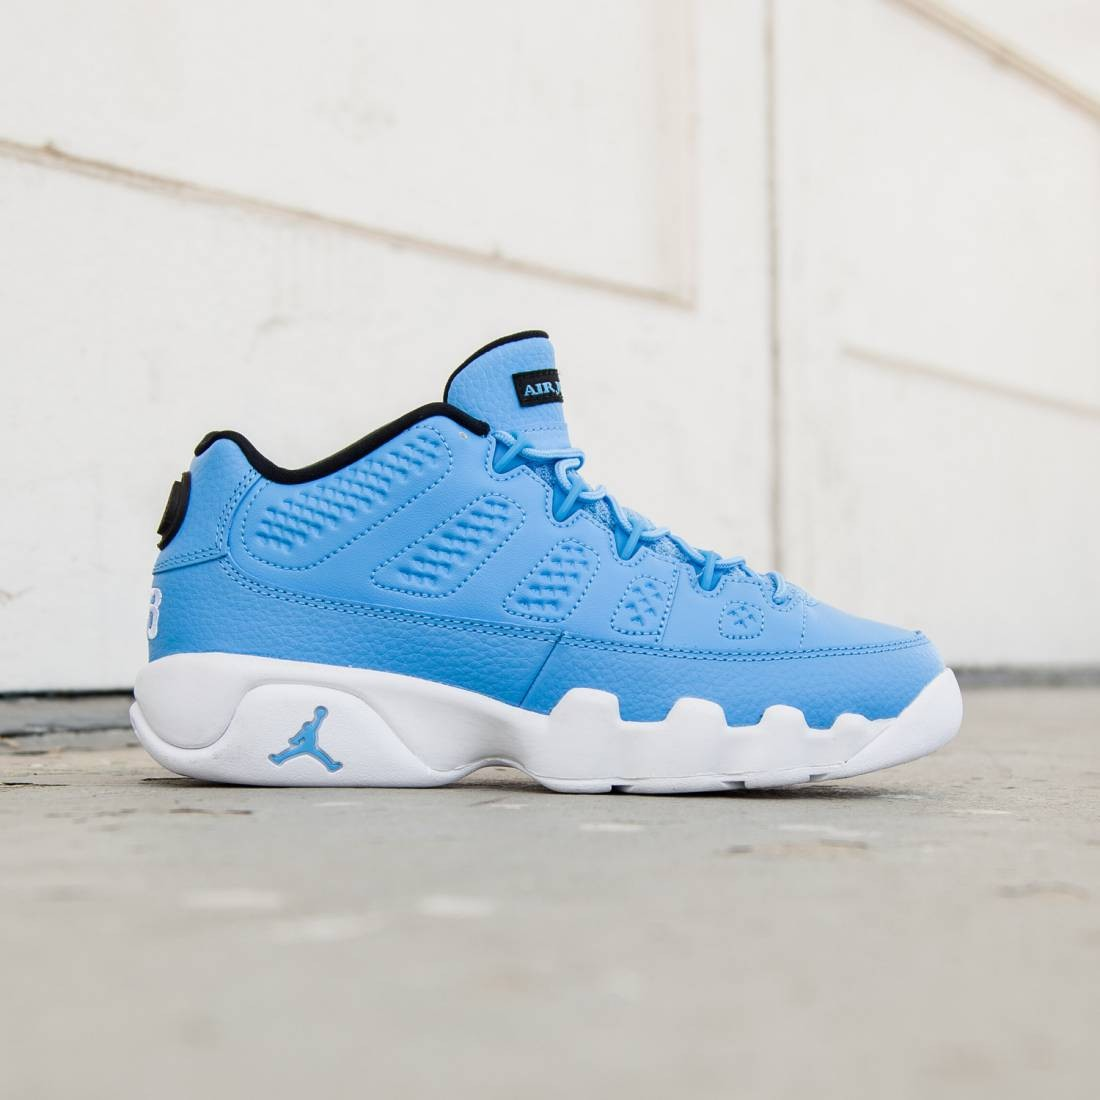 the latest 34e24 3e4c4 coupon for air jordan retro 9 kids blue 2baa3 baf6e